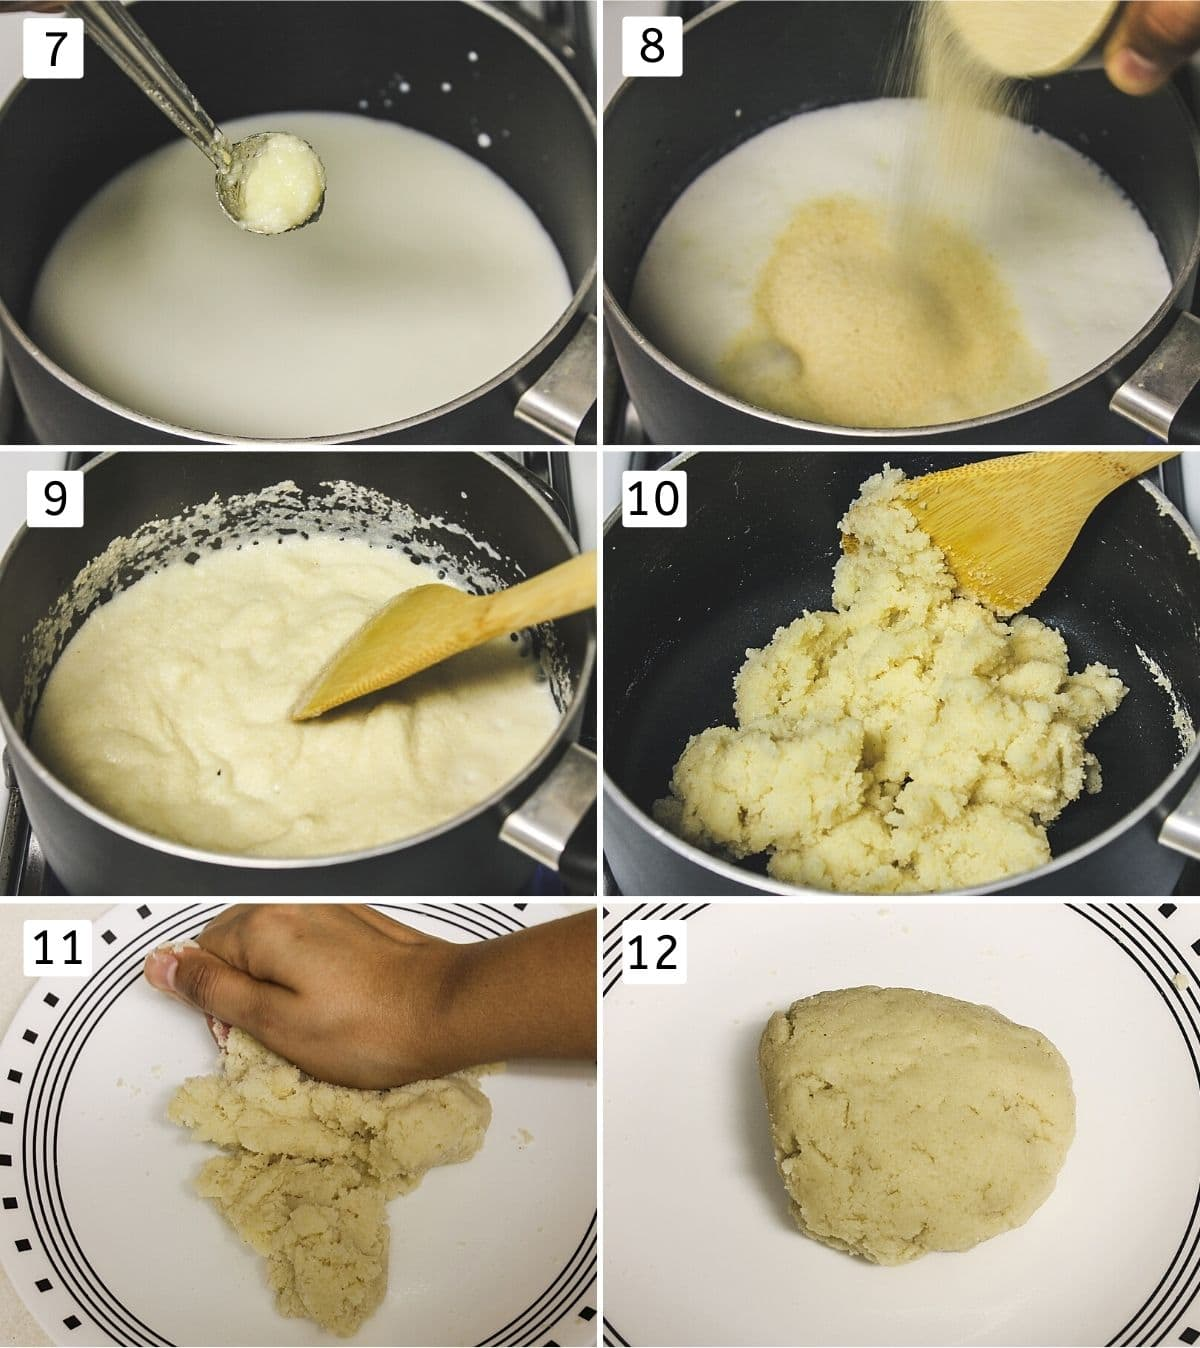 Collage of making outer dough. Shows boiling milk, adding semolina, mixing and kneading to a dough.